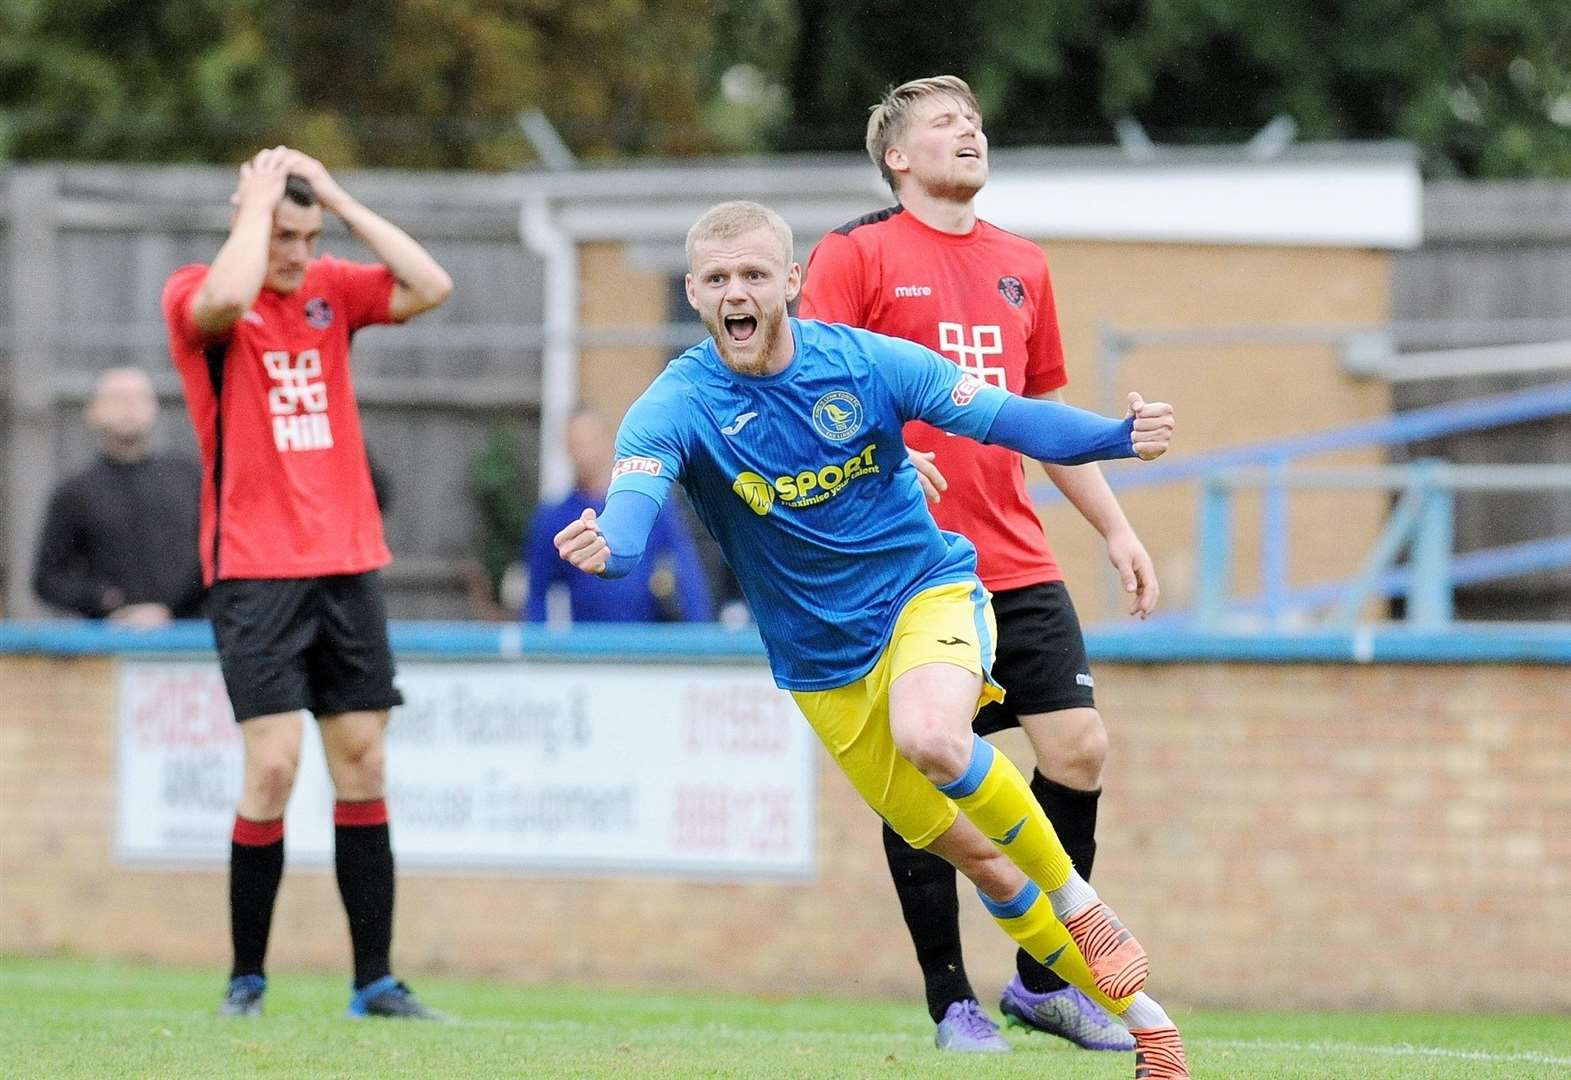 Linnets defender expected to leave club for League One football in the next few days